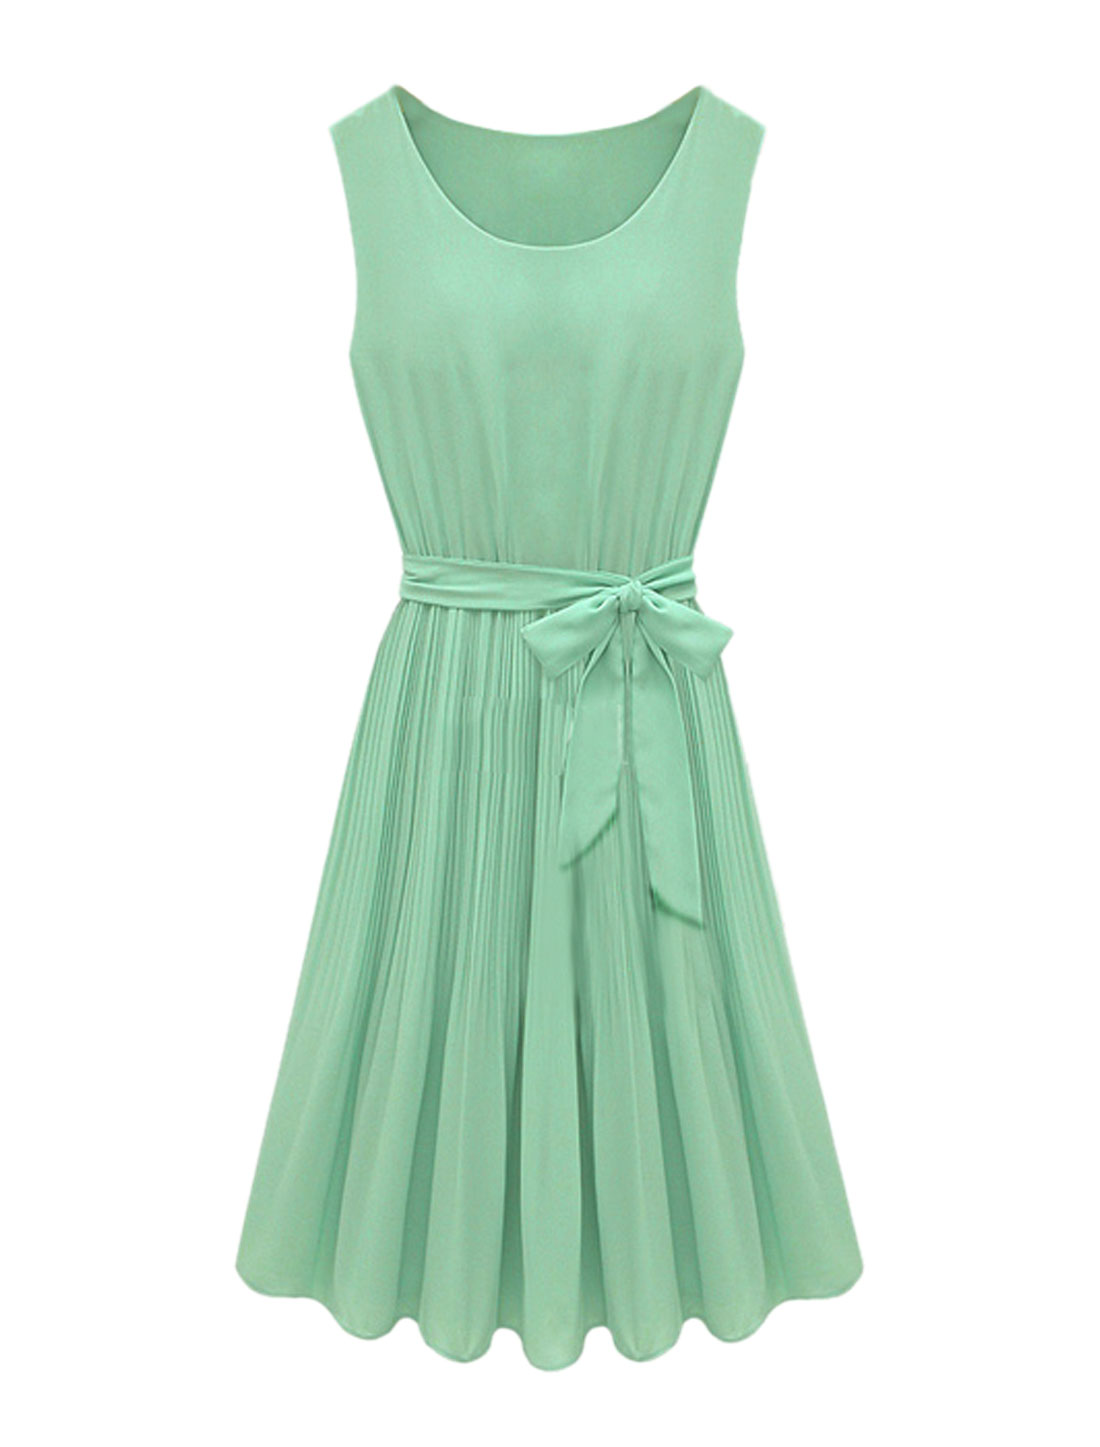 Women Elastic Waist Belted Chiffon Pleated Dress Green S